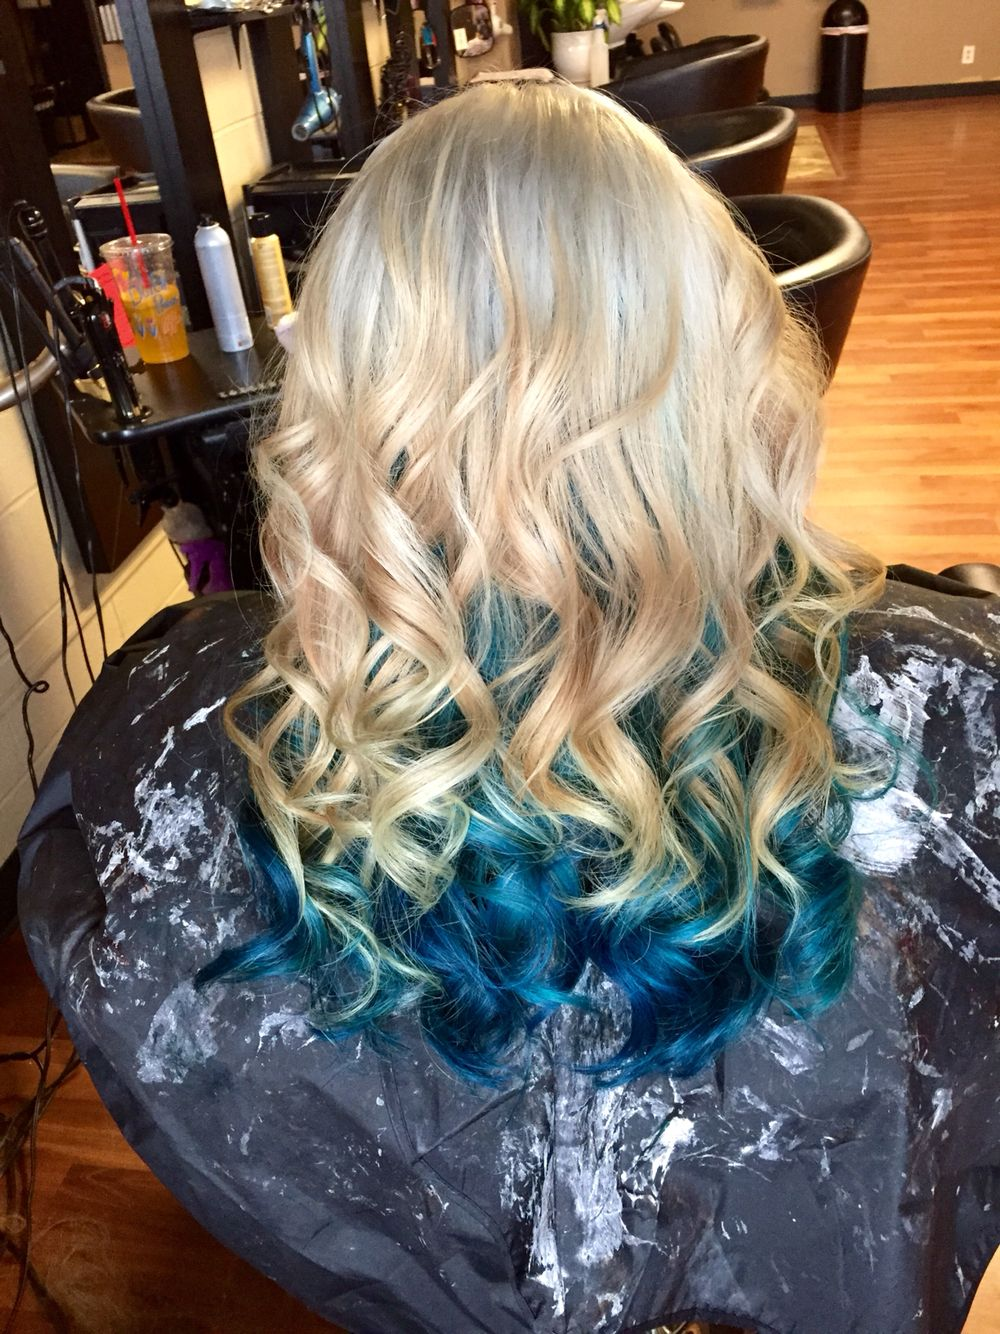 Blonde On Top With Dark Teal And Teal Underneath Cool Hair